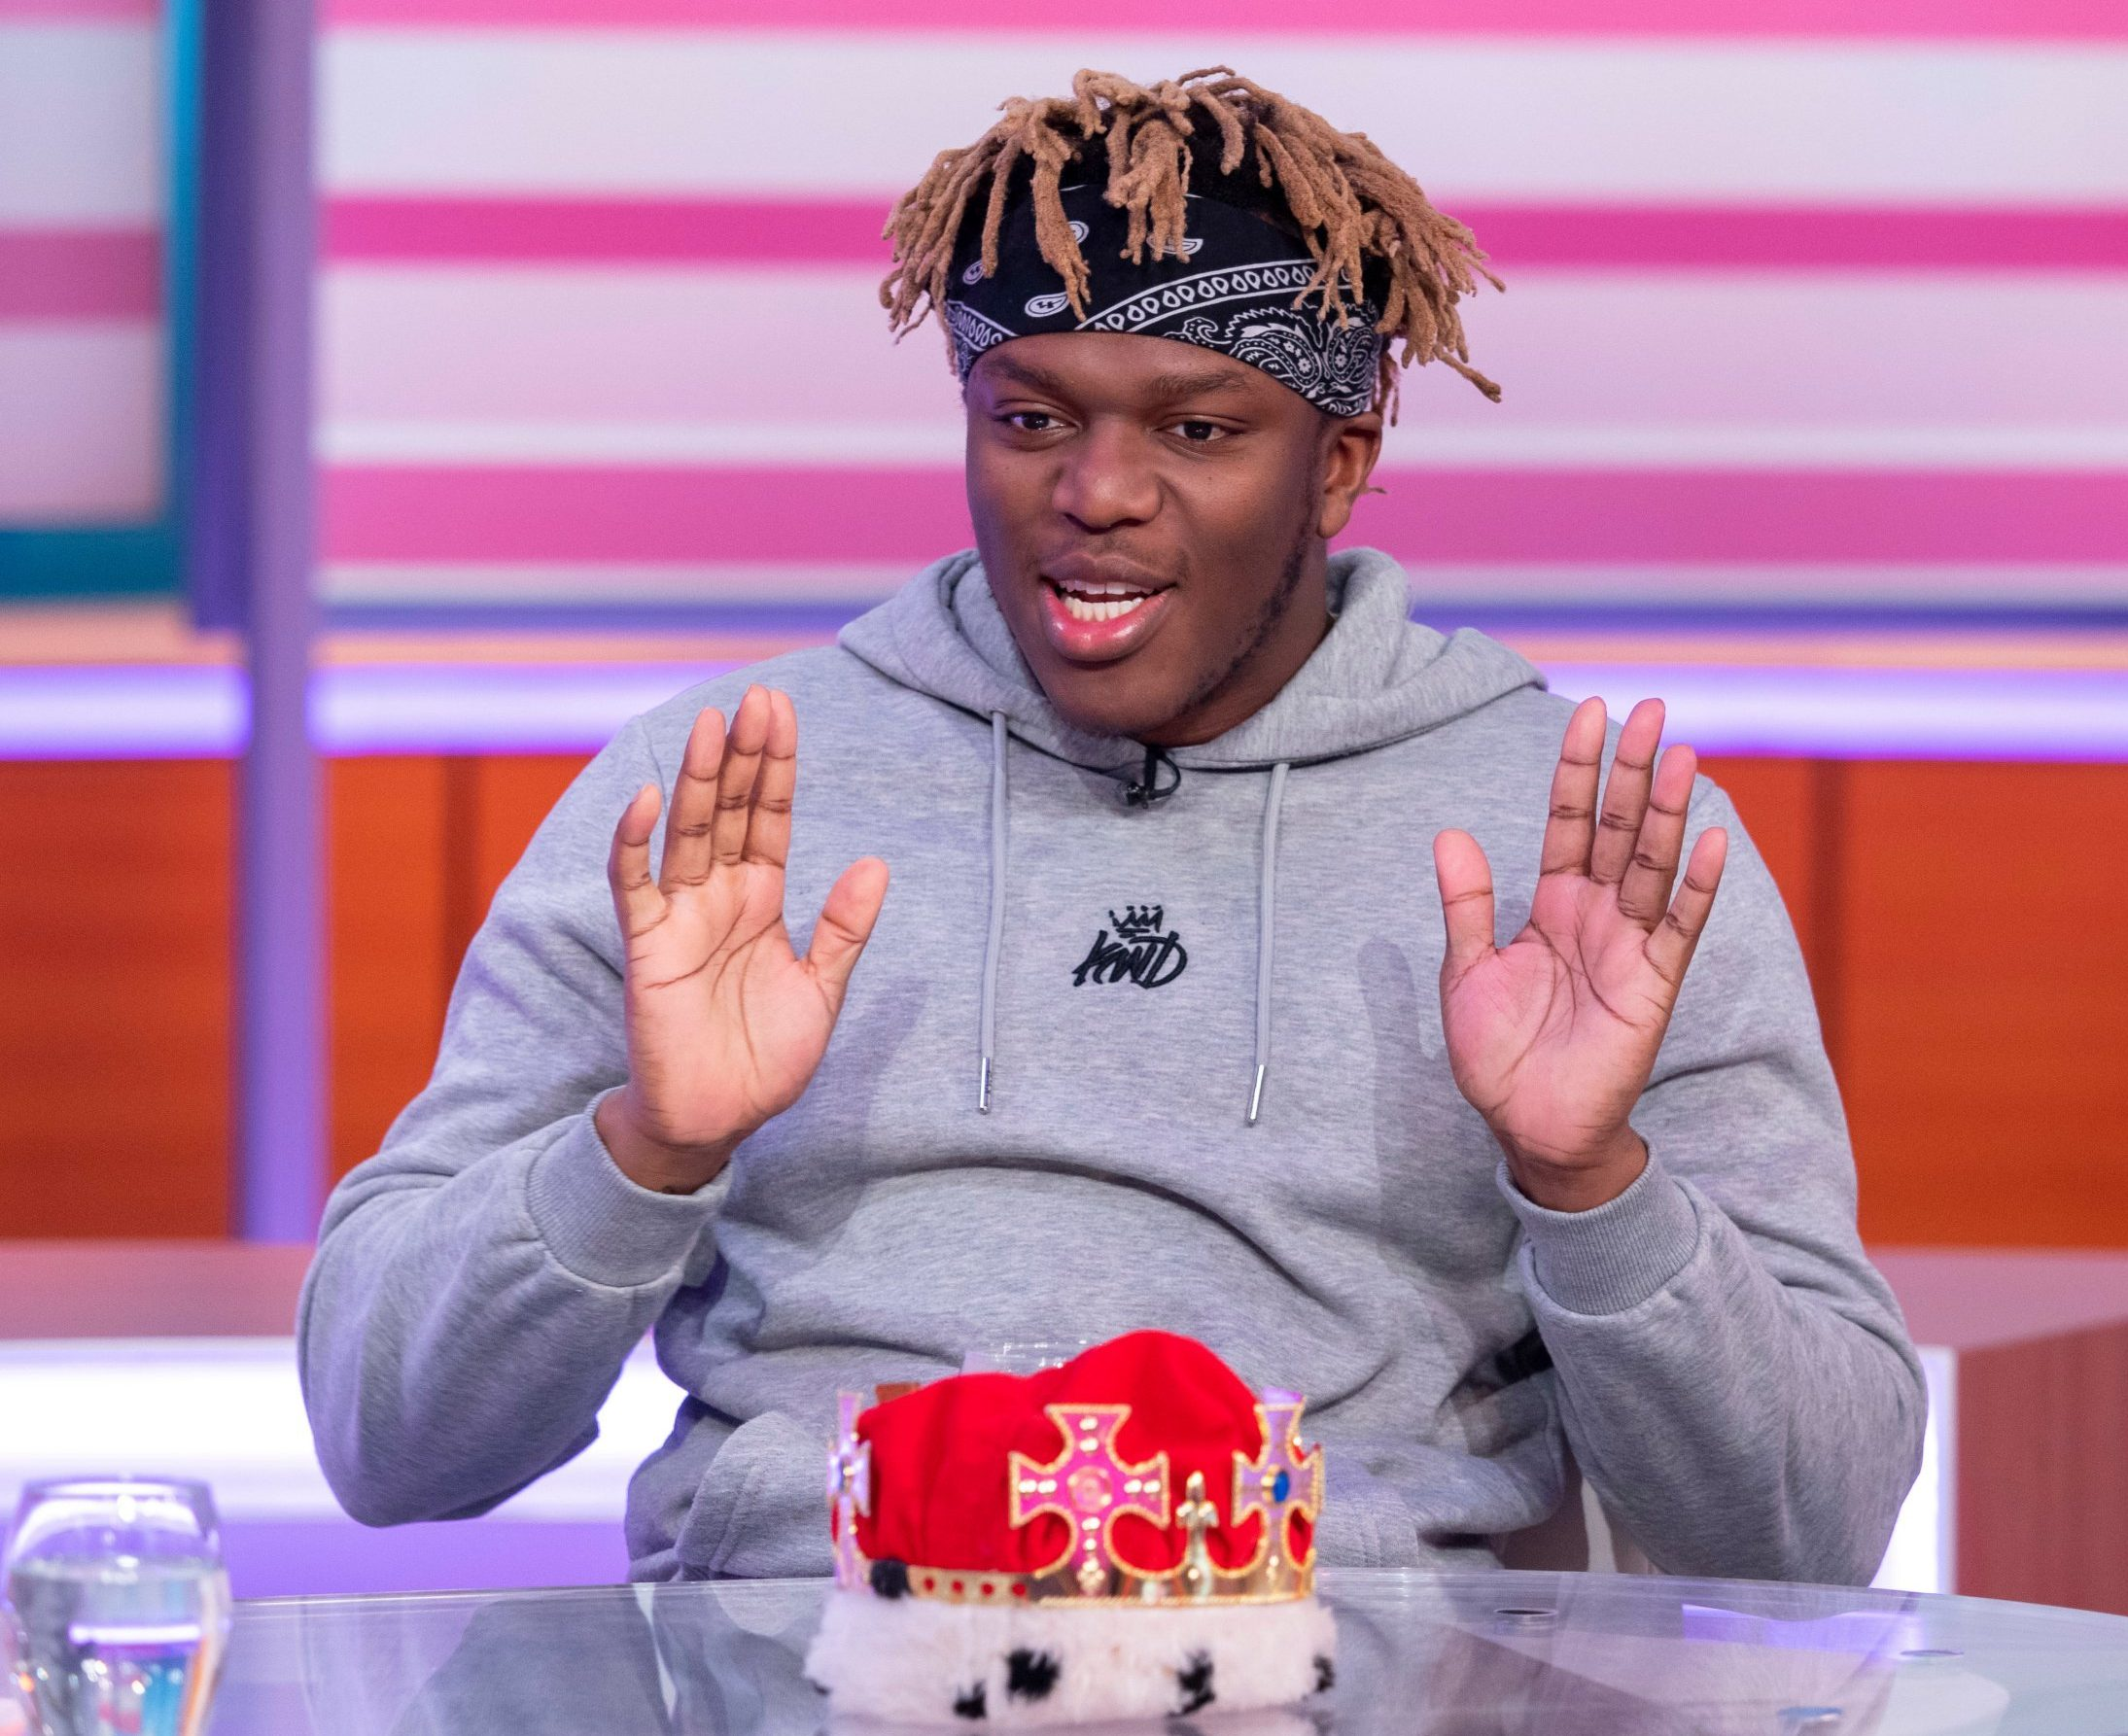 Editorial use only Mandatory Credit: Photo by Ken McKay/ITV/REX (10160896ab) KSI 'Good Morning Britain' TV show, London, UK - 20 Mar 2019 KSI: CAN HE KEEP HIS CROWN? Ding ding? round 2! The YouTube and Instagram superstar is back - after being crowned the 'King Of The Internet' following a challenge by Piers Morgan last year - to talk about his UK tour, the pressures of being an online star and why his rematch with Logan Paul is now in jeopardy. CLIPS: Requested free clips of the KSI vs Logan match from last year + tour trailer with Randolph (as they're touring together) ULAY: Recap of KSI crowned King of the Internet WALK ON PROPS: Regal gown and crown